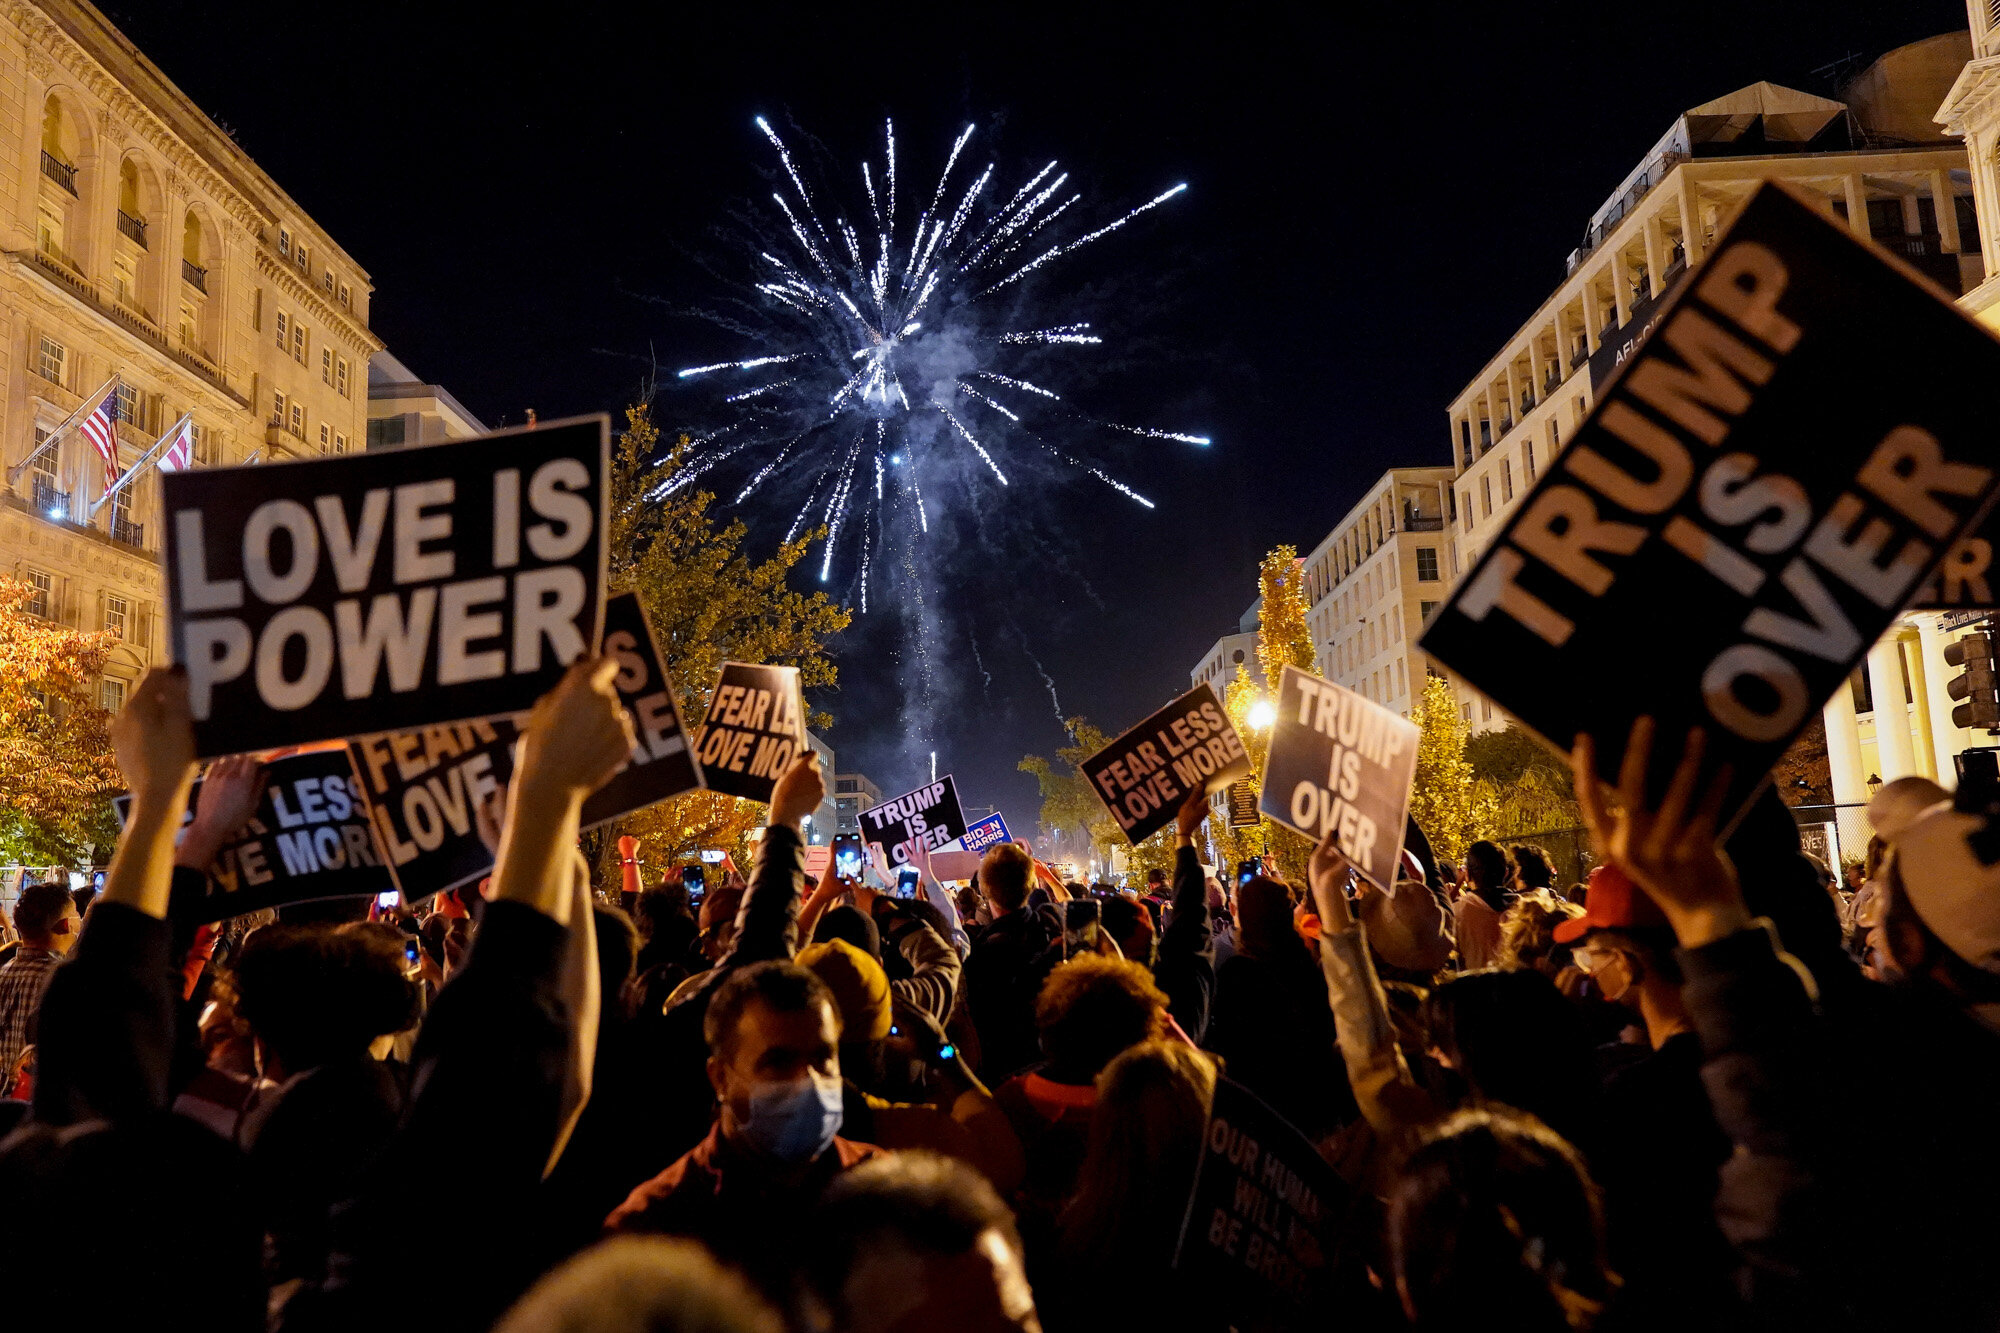 People shoot off fireworks in Washington's Black Lives Matter Plaza while celebrating president-elect Joe Biden's win over President Donald Trump to become the 46th president of the United States on Nov. 7, 2020. (AP Photo/Jacquelyn Martin)